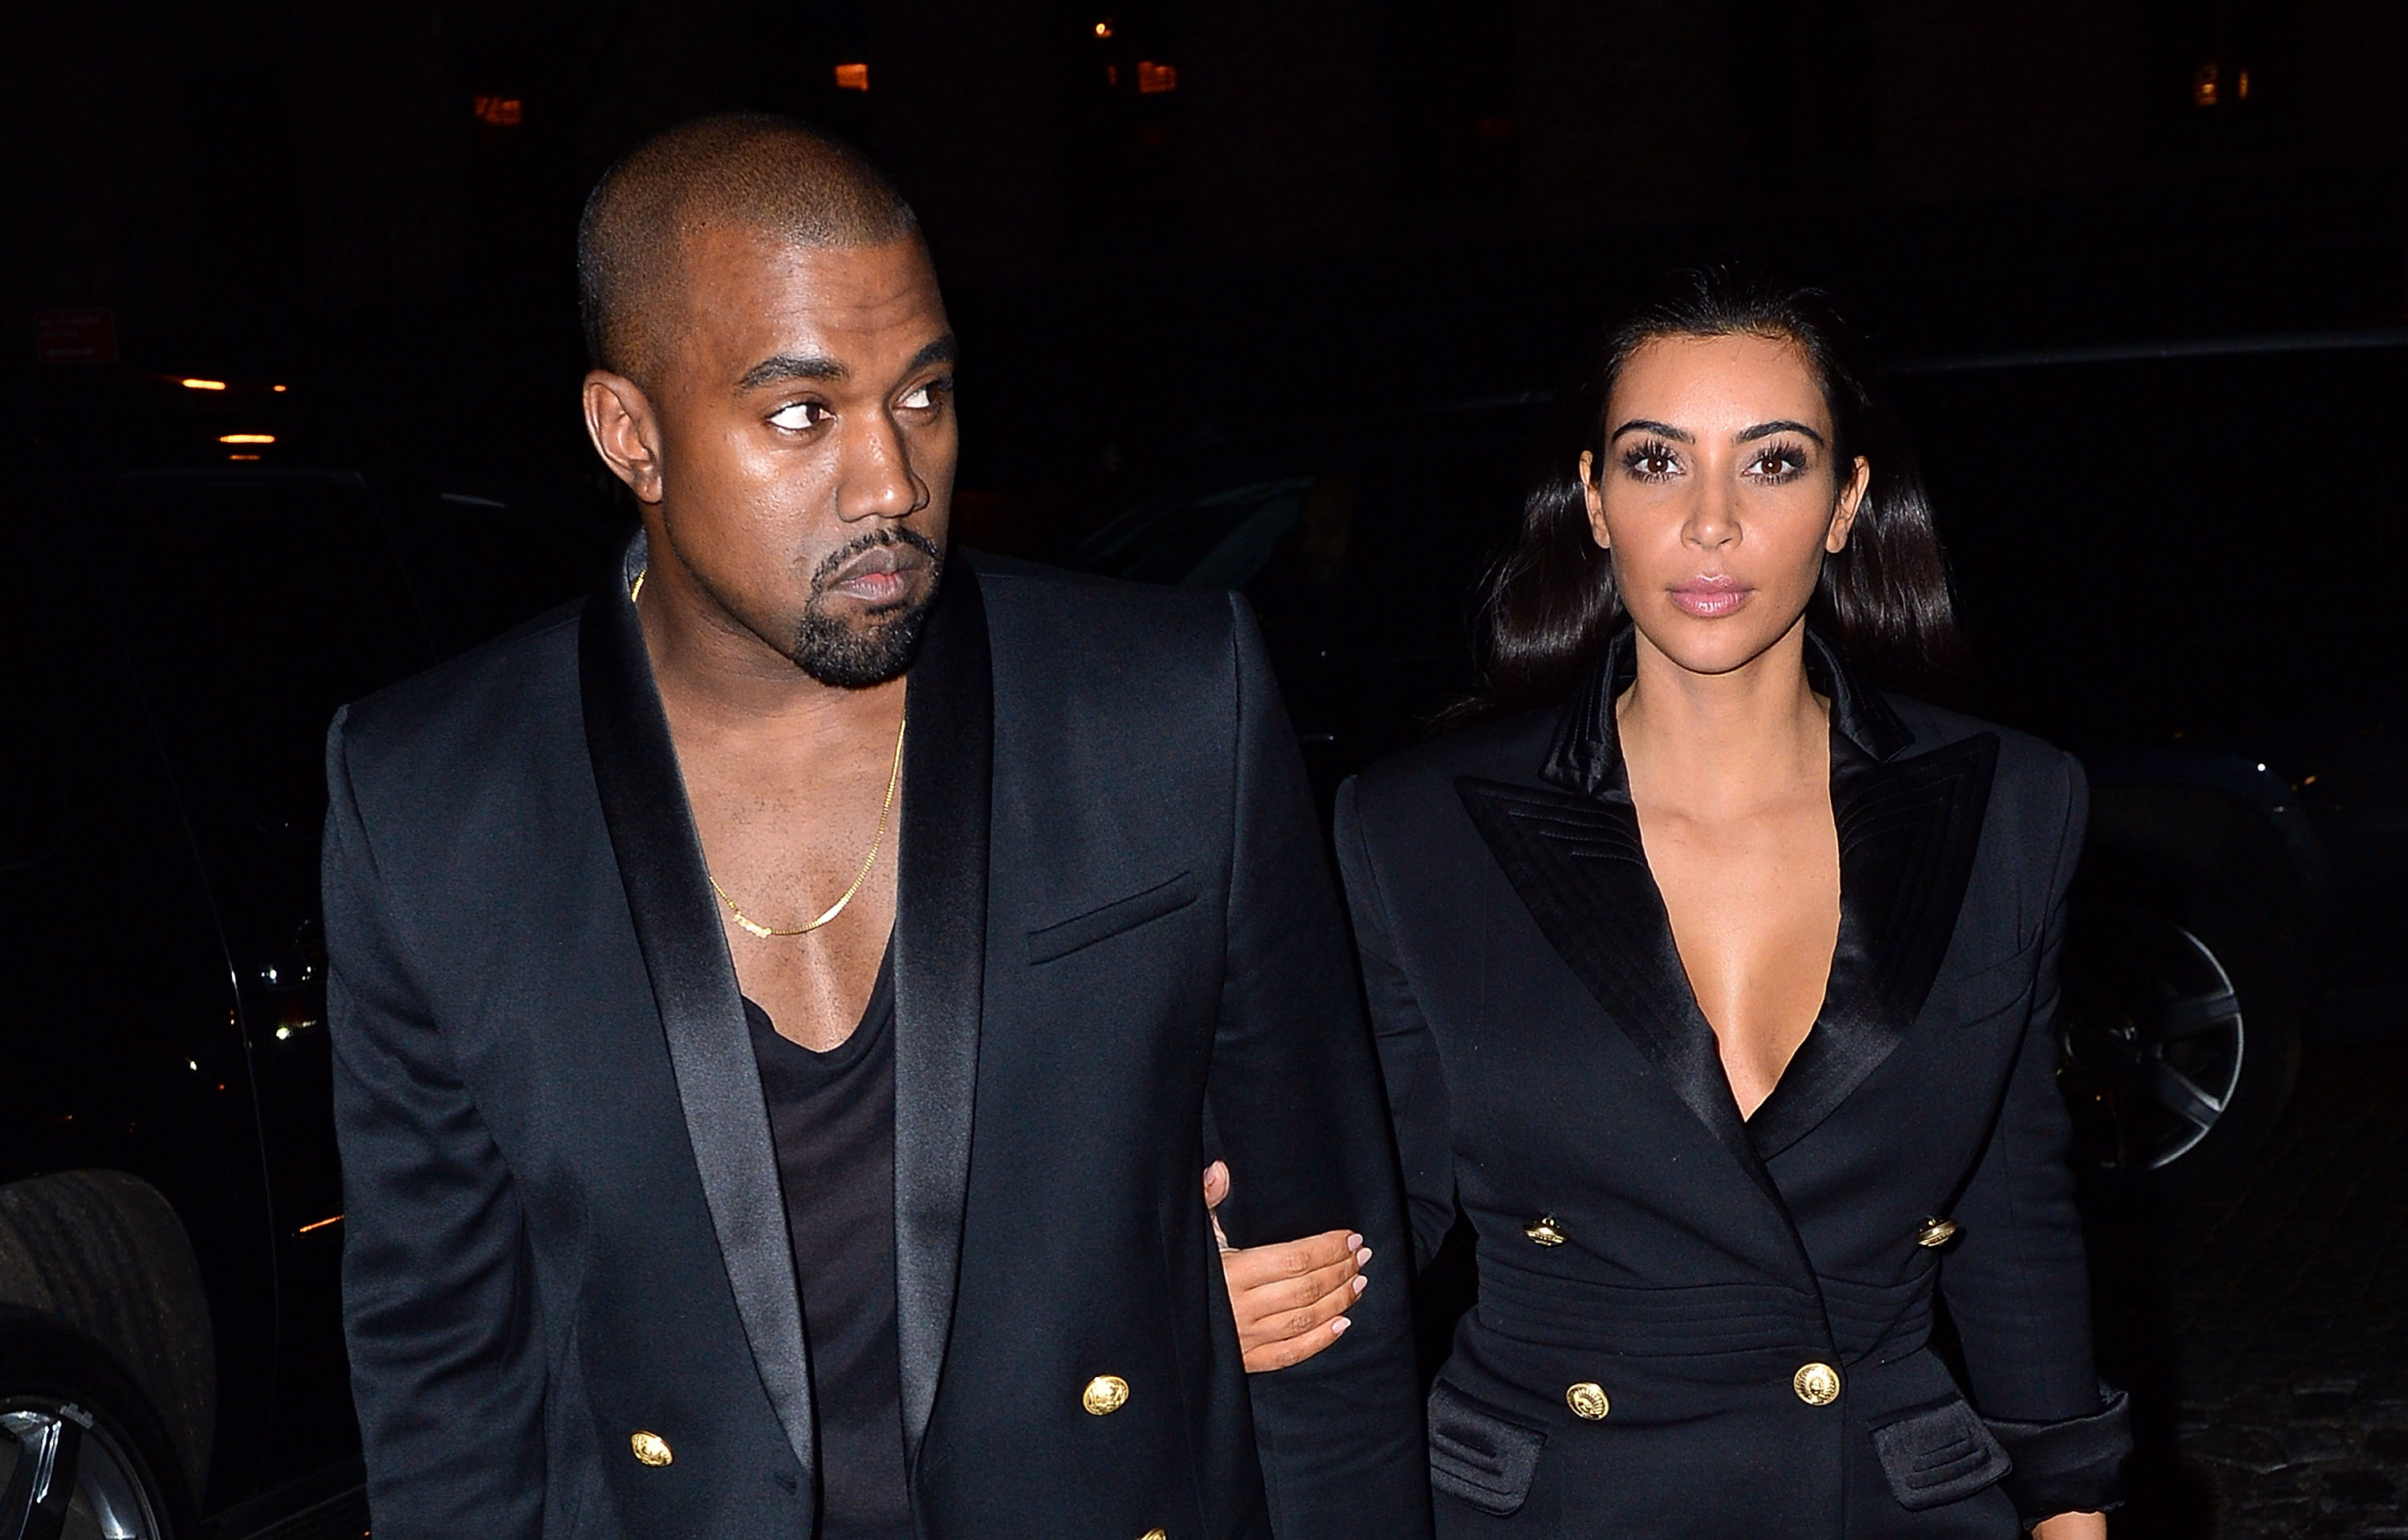 Kanye West and Kim Kardashian arrive to Soho House New York.